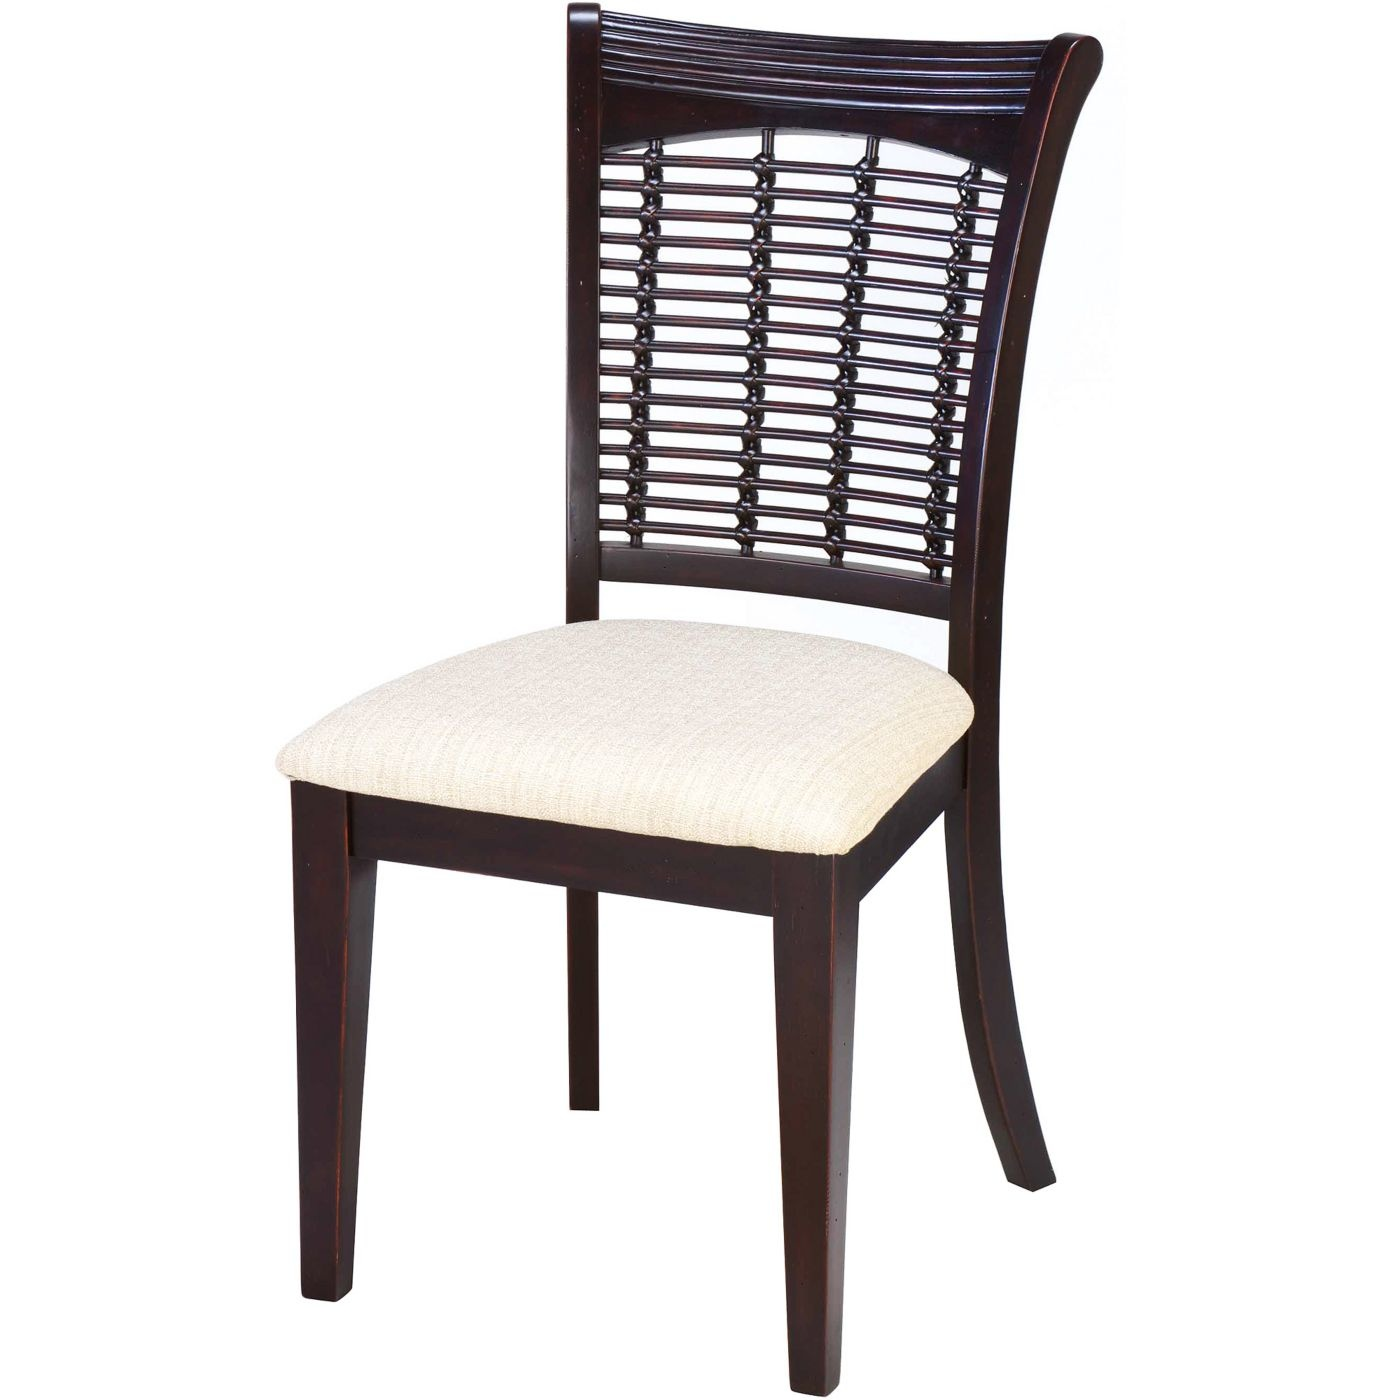 Hillsdale-Bayberry-Dining-Chairs-Cherry-Finish-Set-of-2-Brand-New